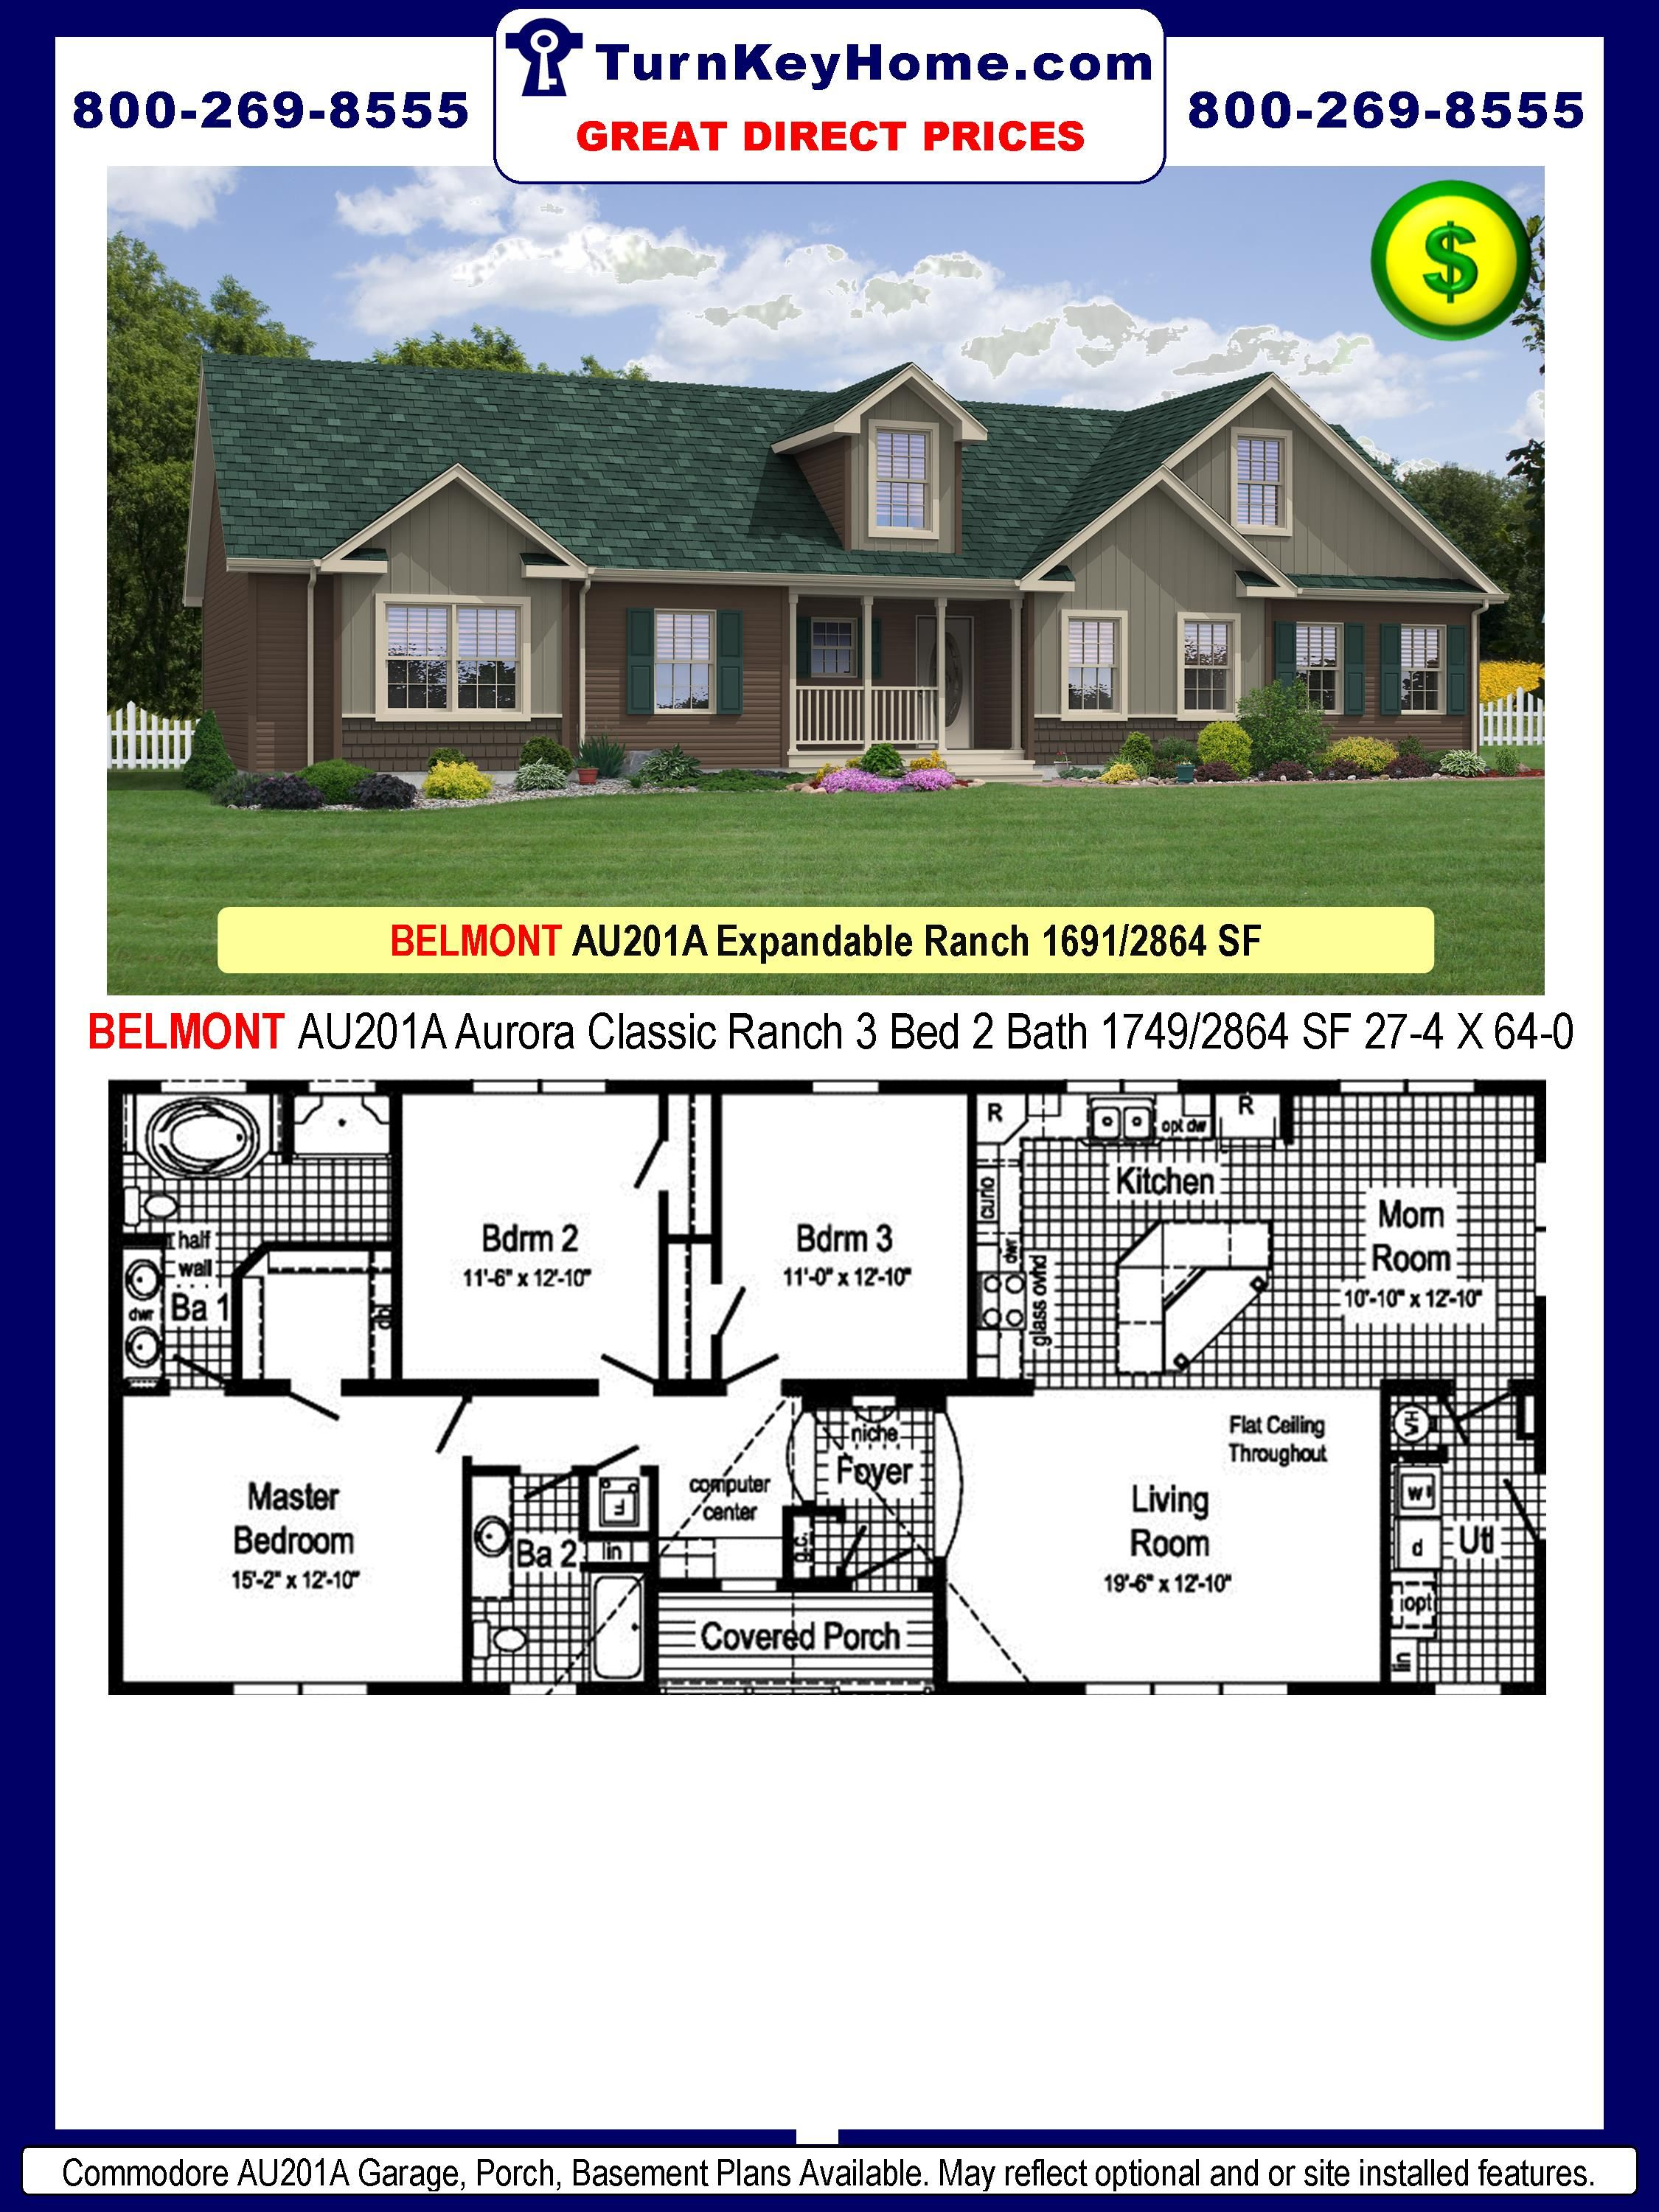 Pin By Brooke Robinson On House Modular Homes Modular Home Prices Modular Home Floor Plans